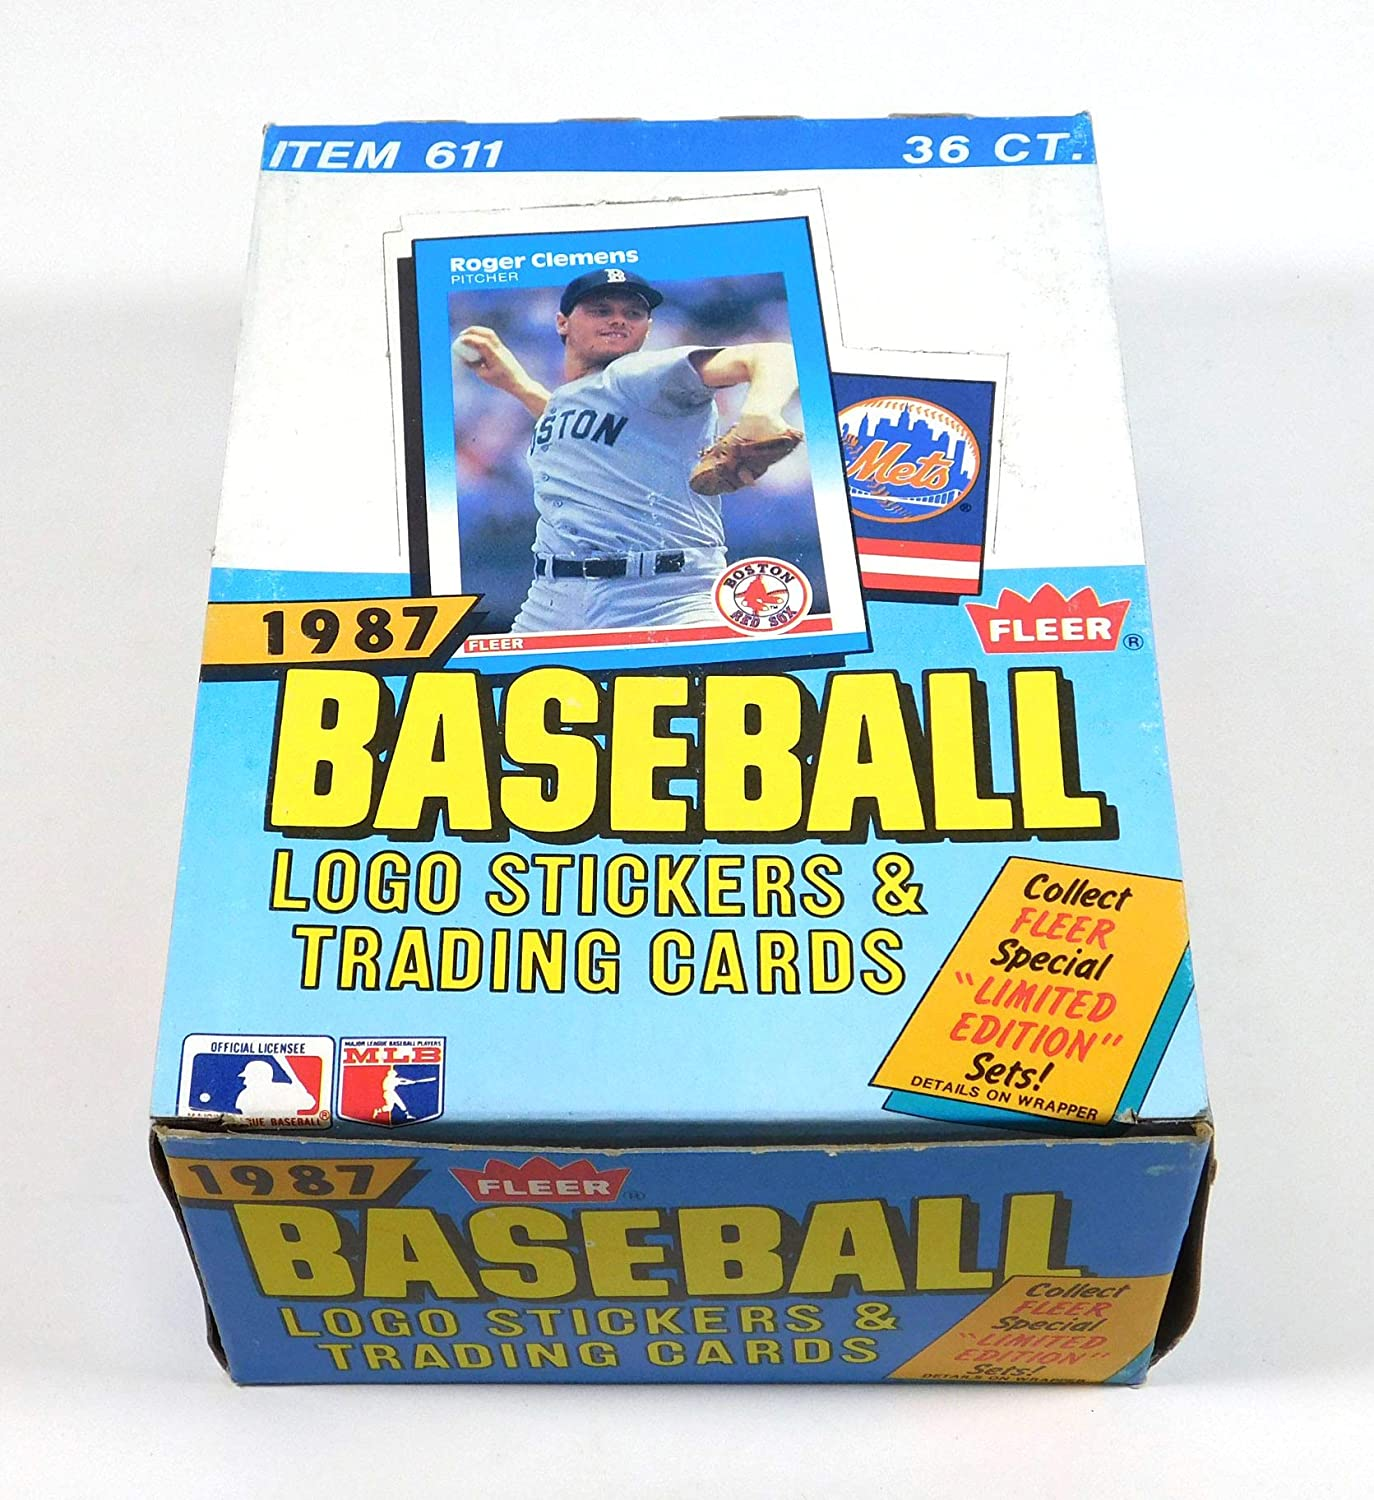 B00A44KR14 1987 Fleer Baseball Card Hobby Box 81DPR6lU-SL